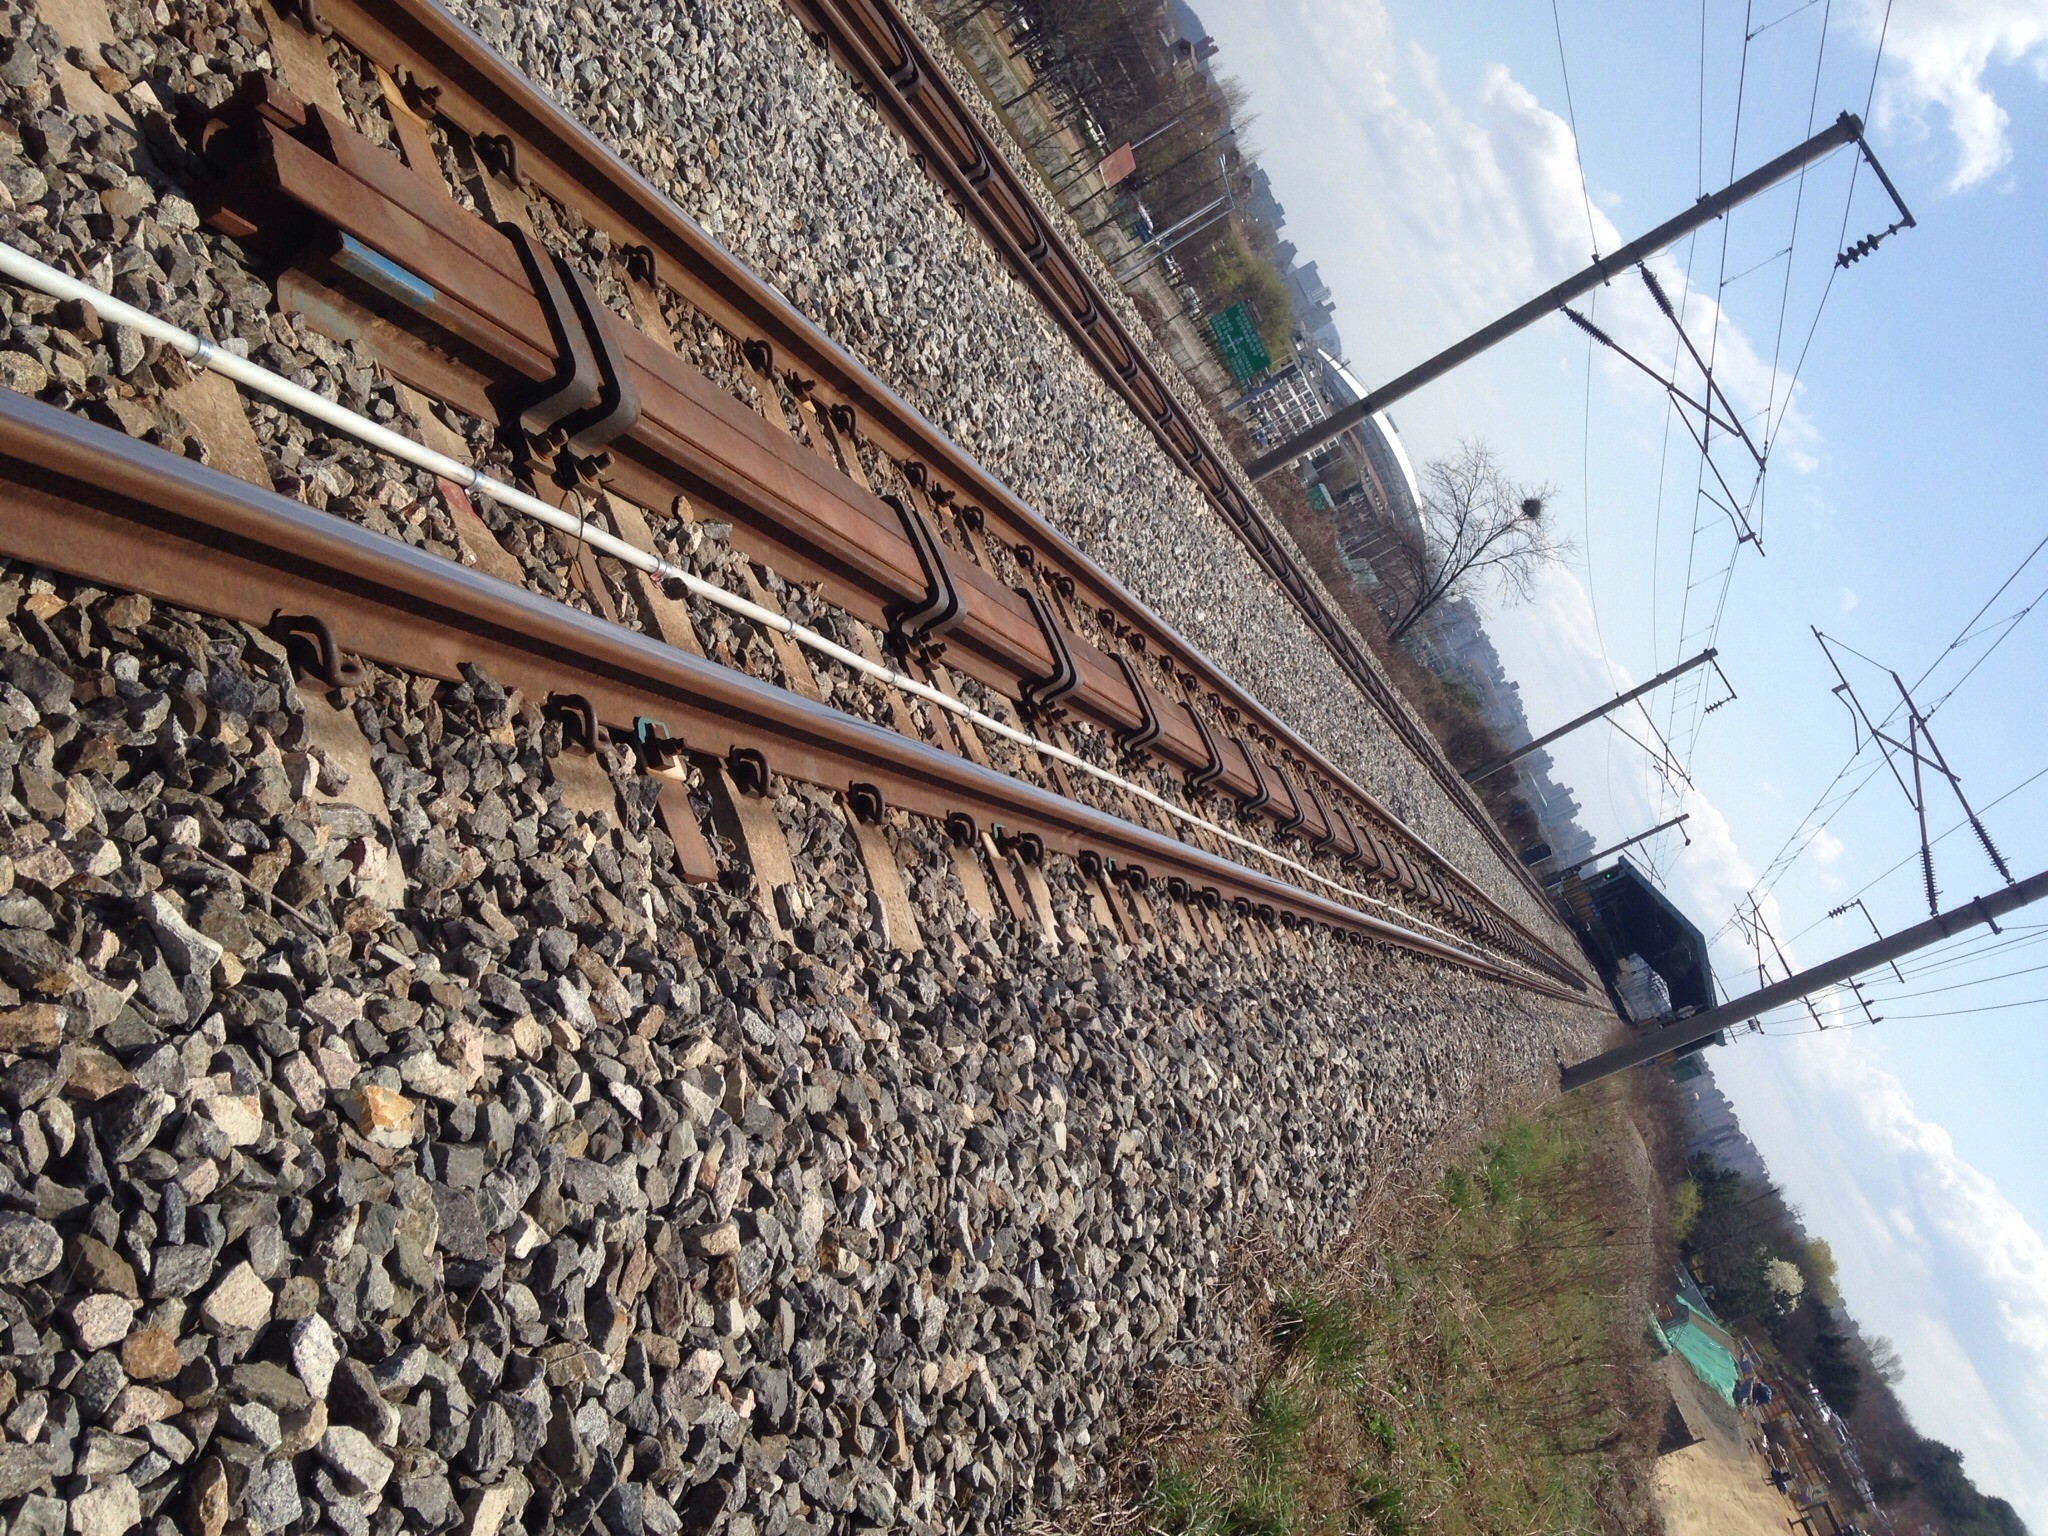 Installed SAA on rail to settlement during tunnel excavation